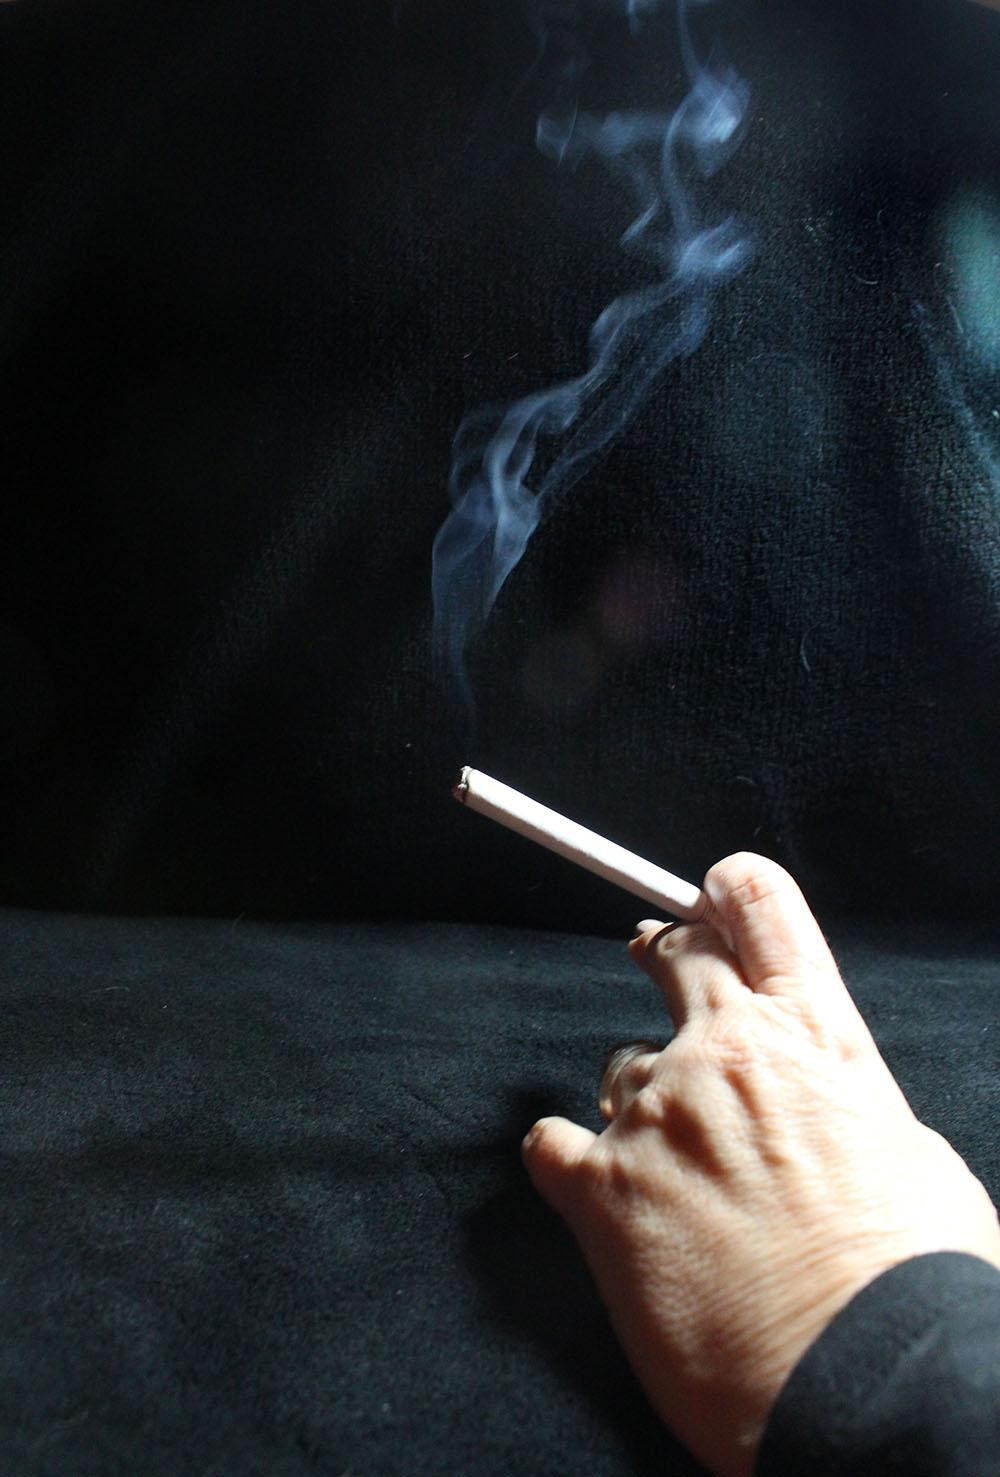 A hand holding a lit cigarette rests on a table. In mid-November, the Kansas City, Mo. City Council and Kansas City, Kan.  Unified Government Board of Commission passed an ordinance raising the legal age to buy nicotine and vapor products from 18 years old to 21 years old. photo illustration by Kat Mediavilla